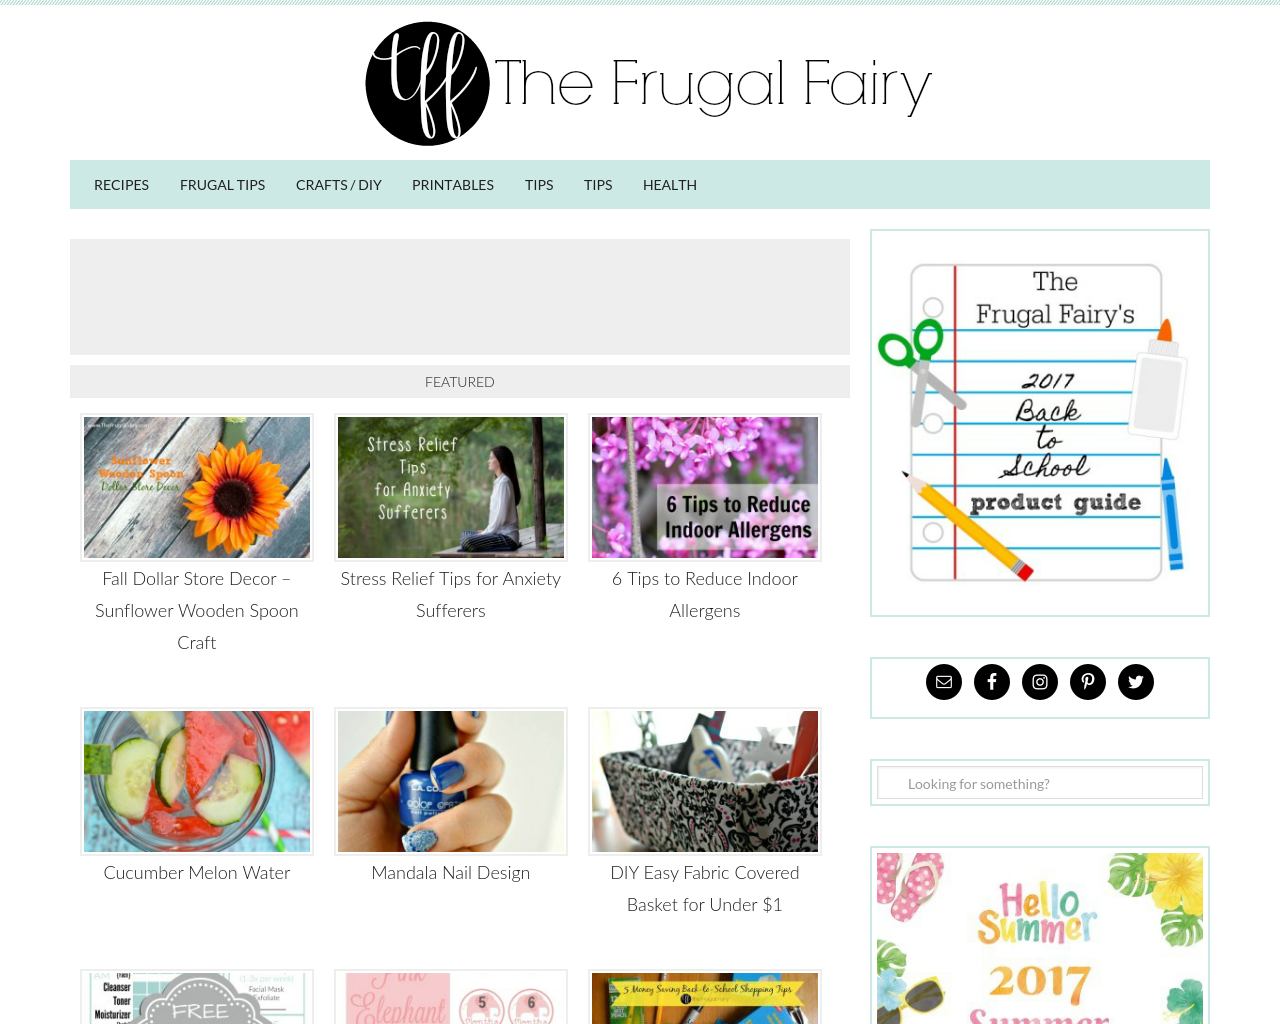 The-Frugal-Fairy-Advertising-Reviews-Pricing